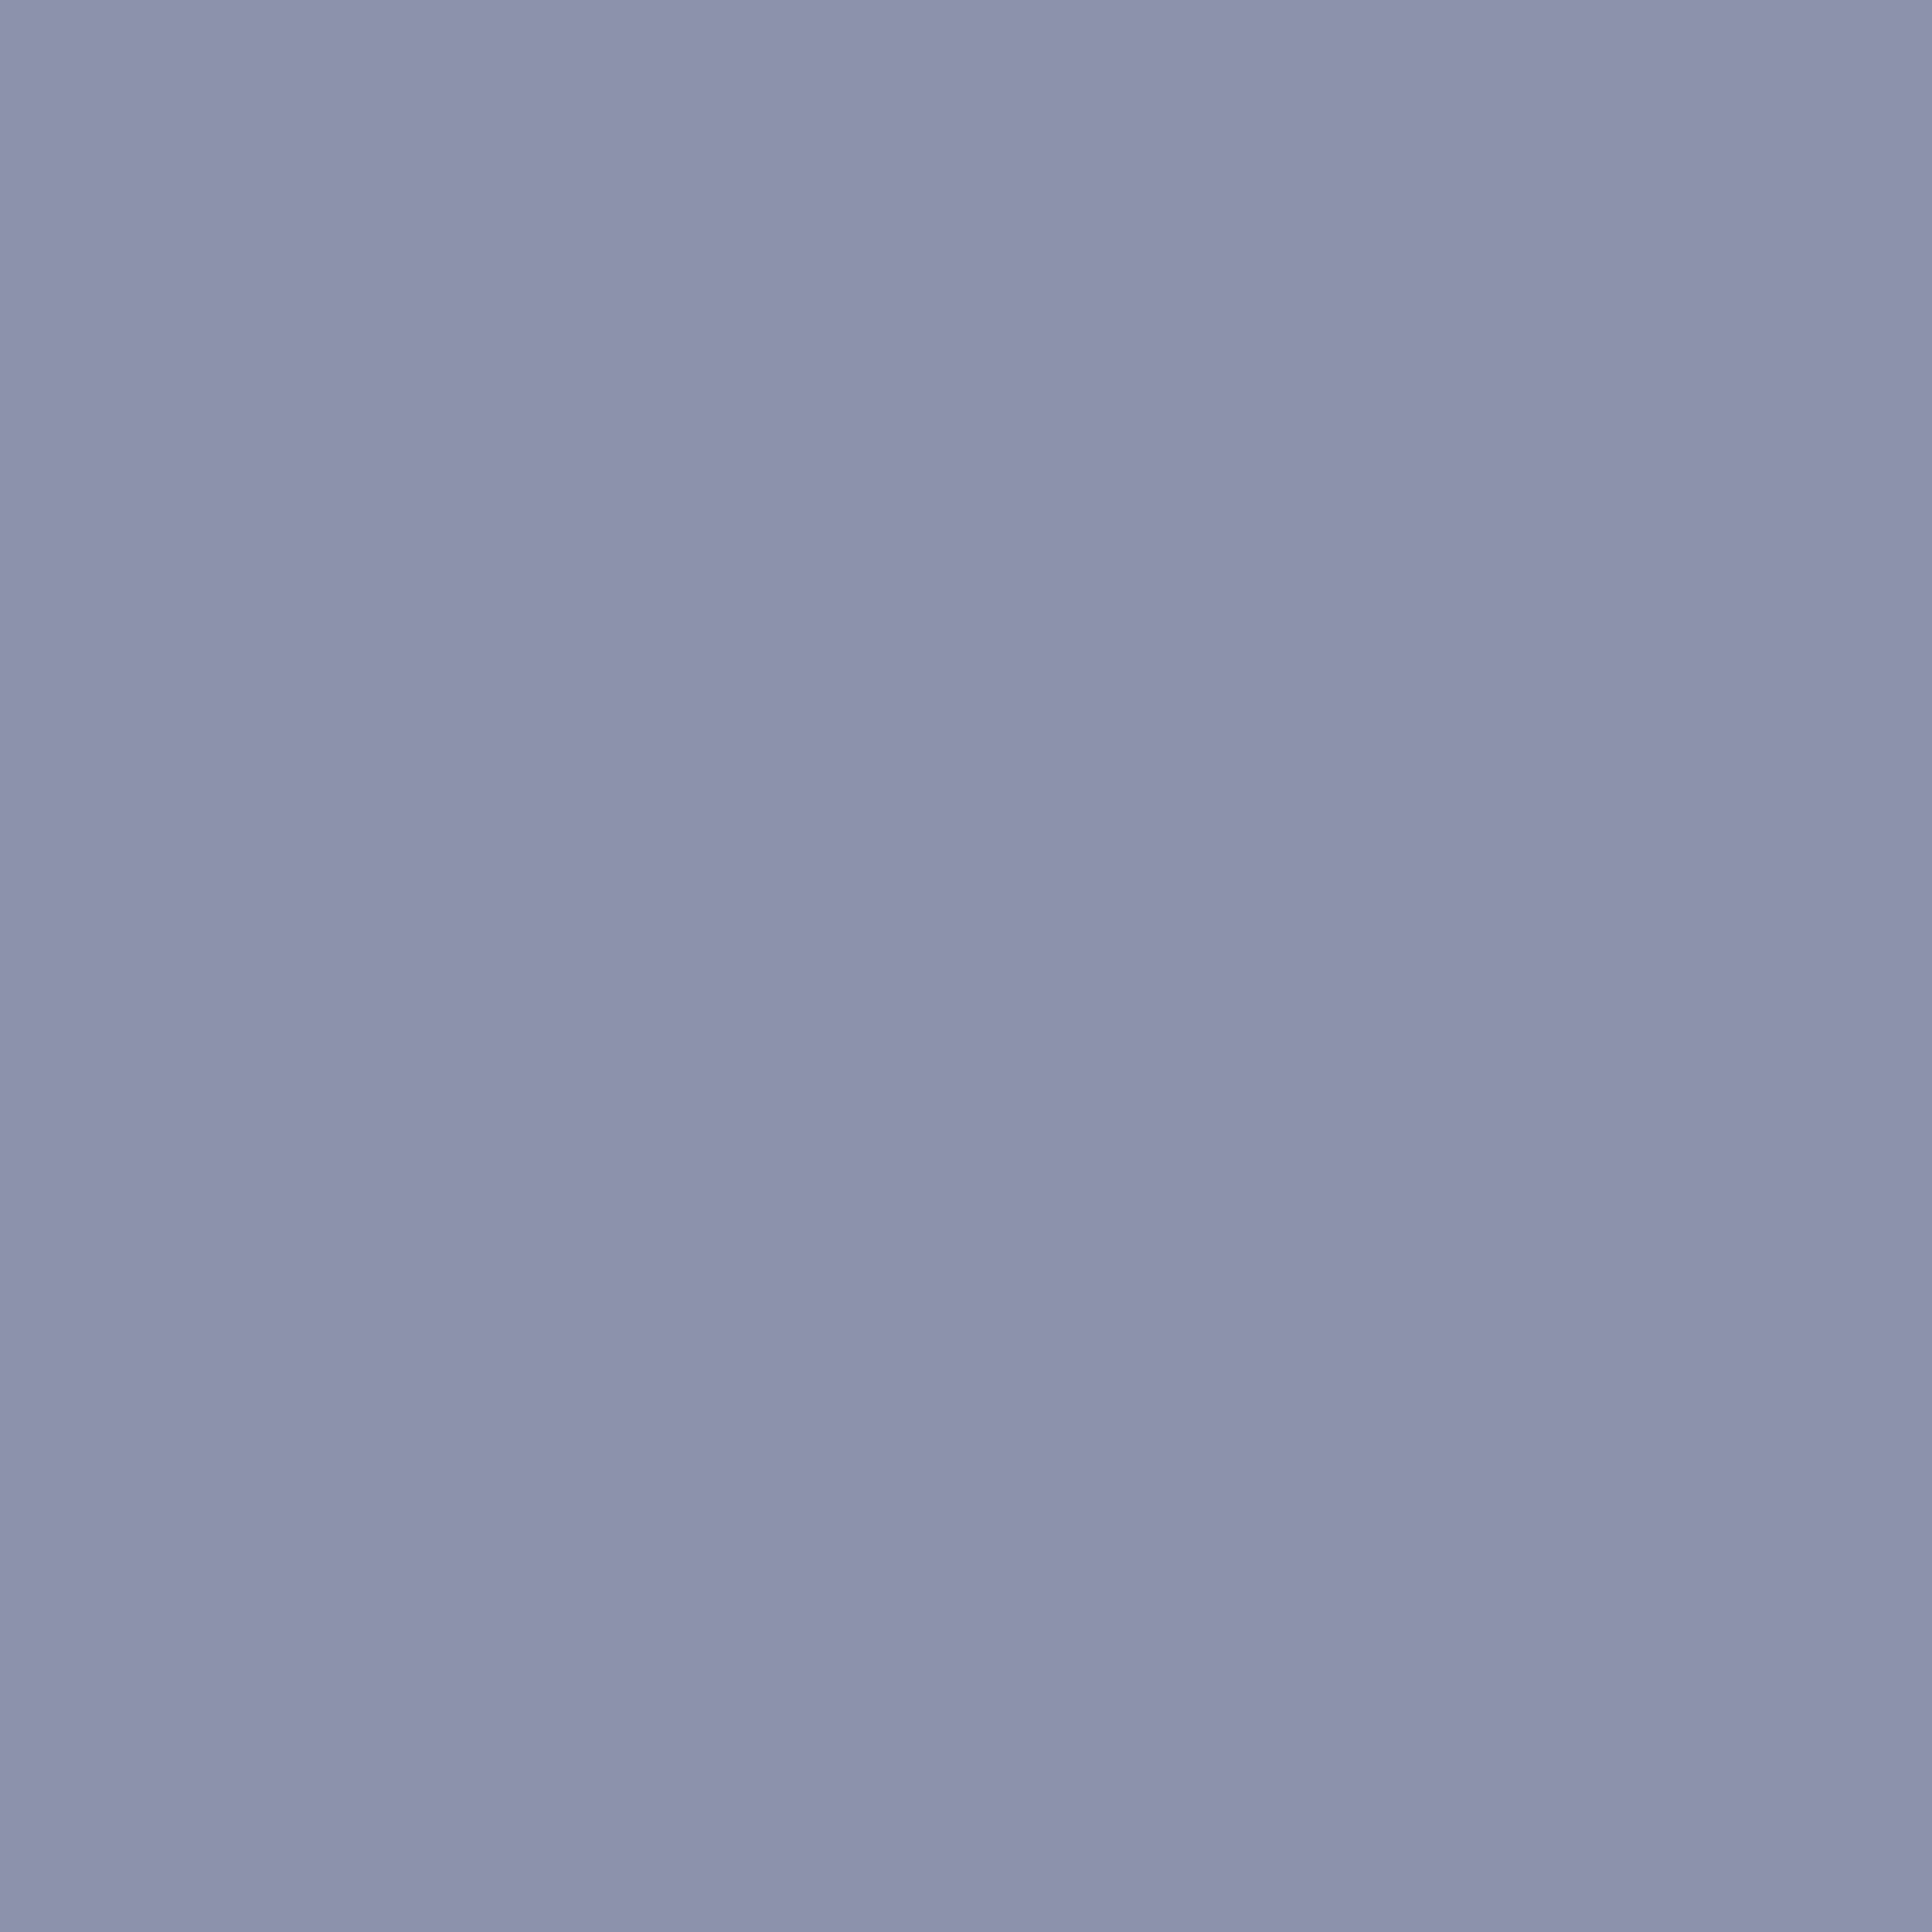 2732x2732 Gray-blue Solid Color Background